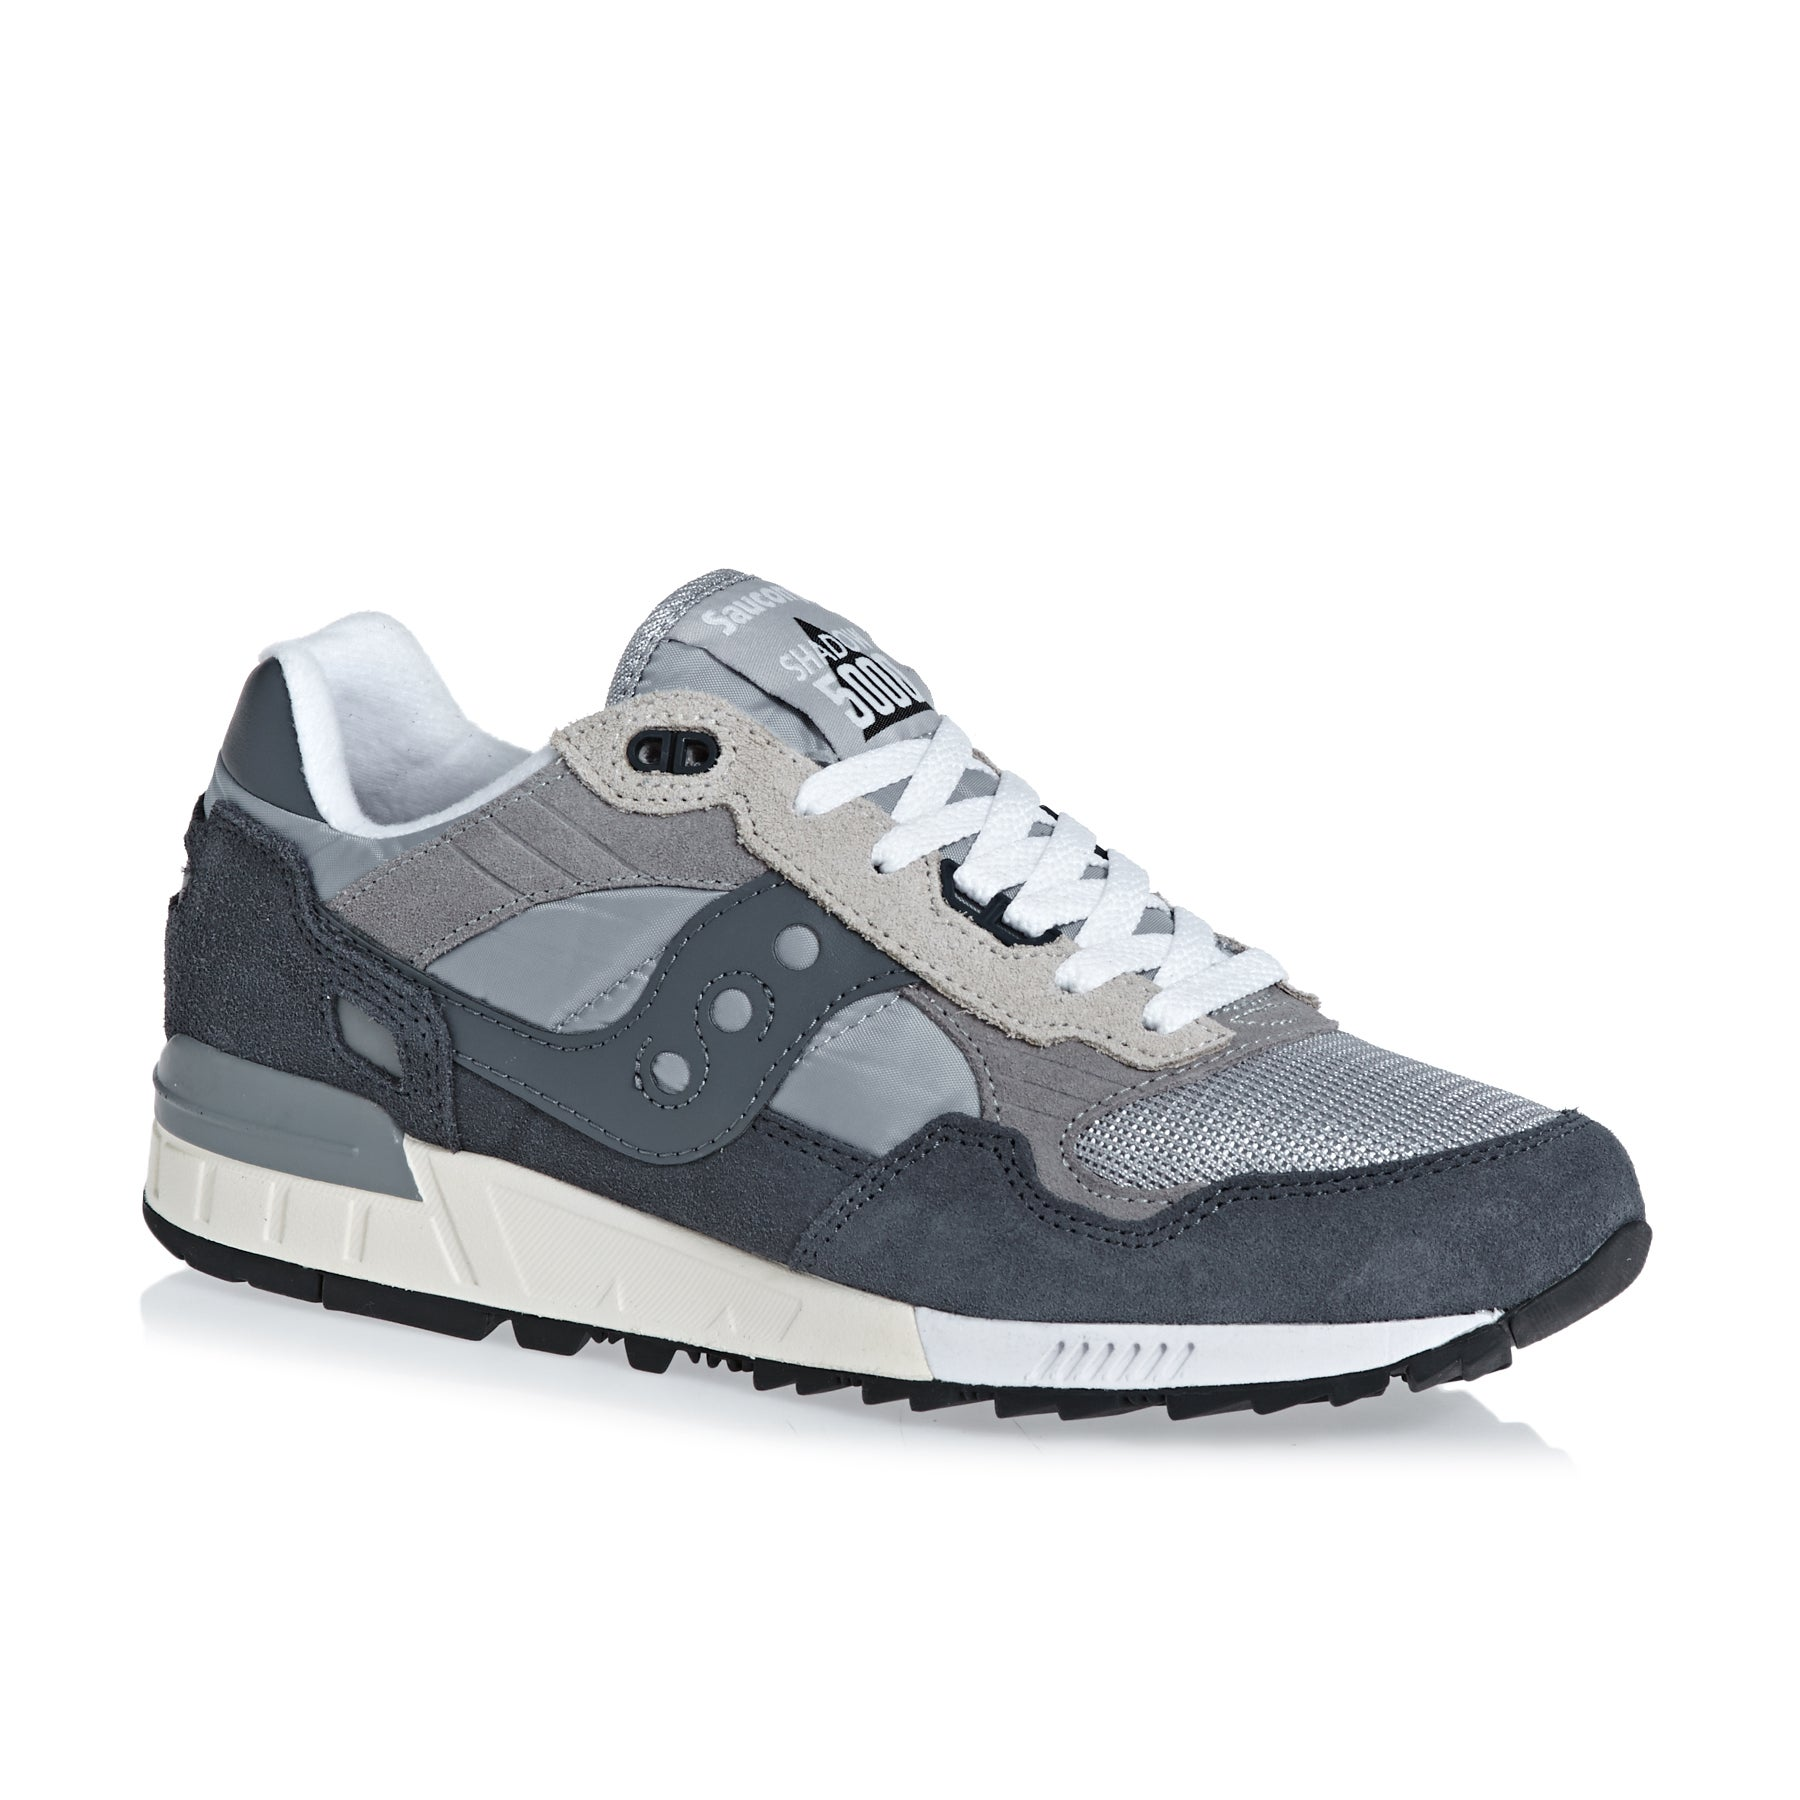 7f83266c7d15 Saucony Shadow 5000 Vintage Shoes available from Surfdome